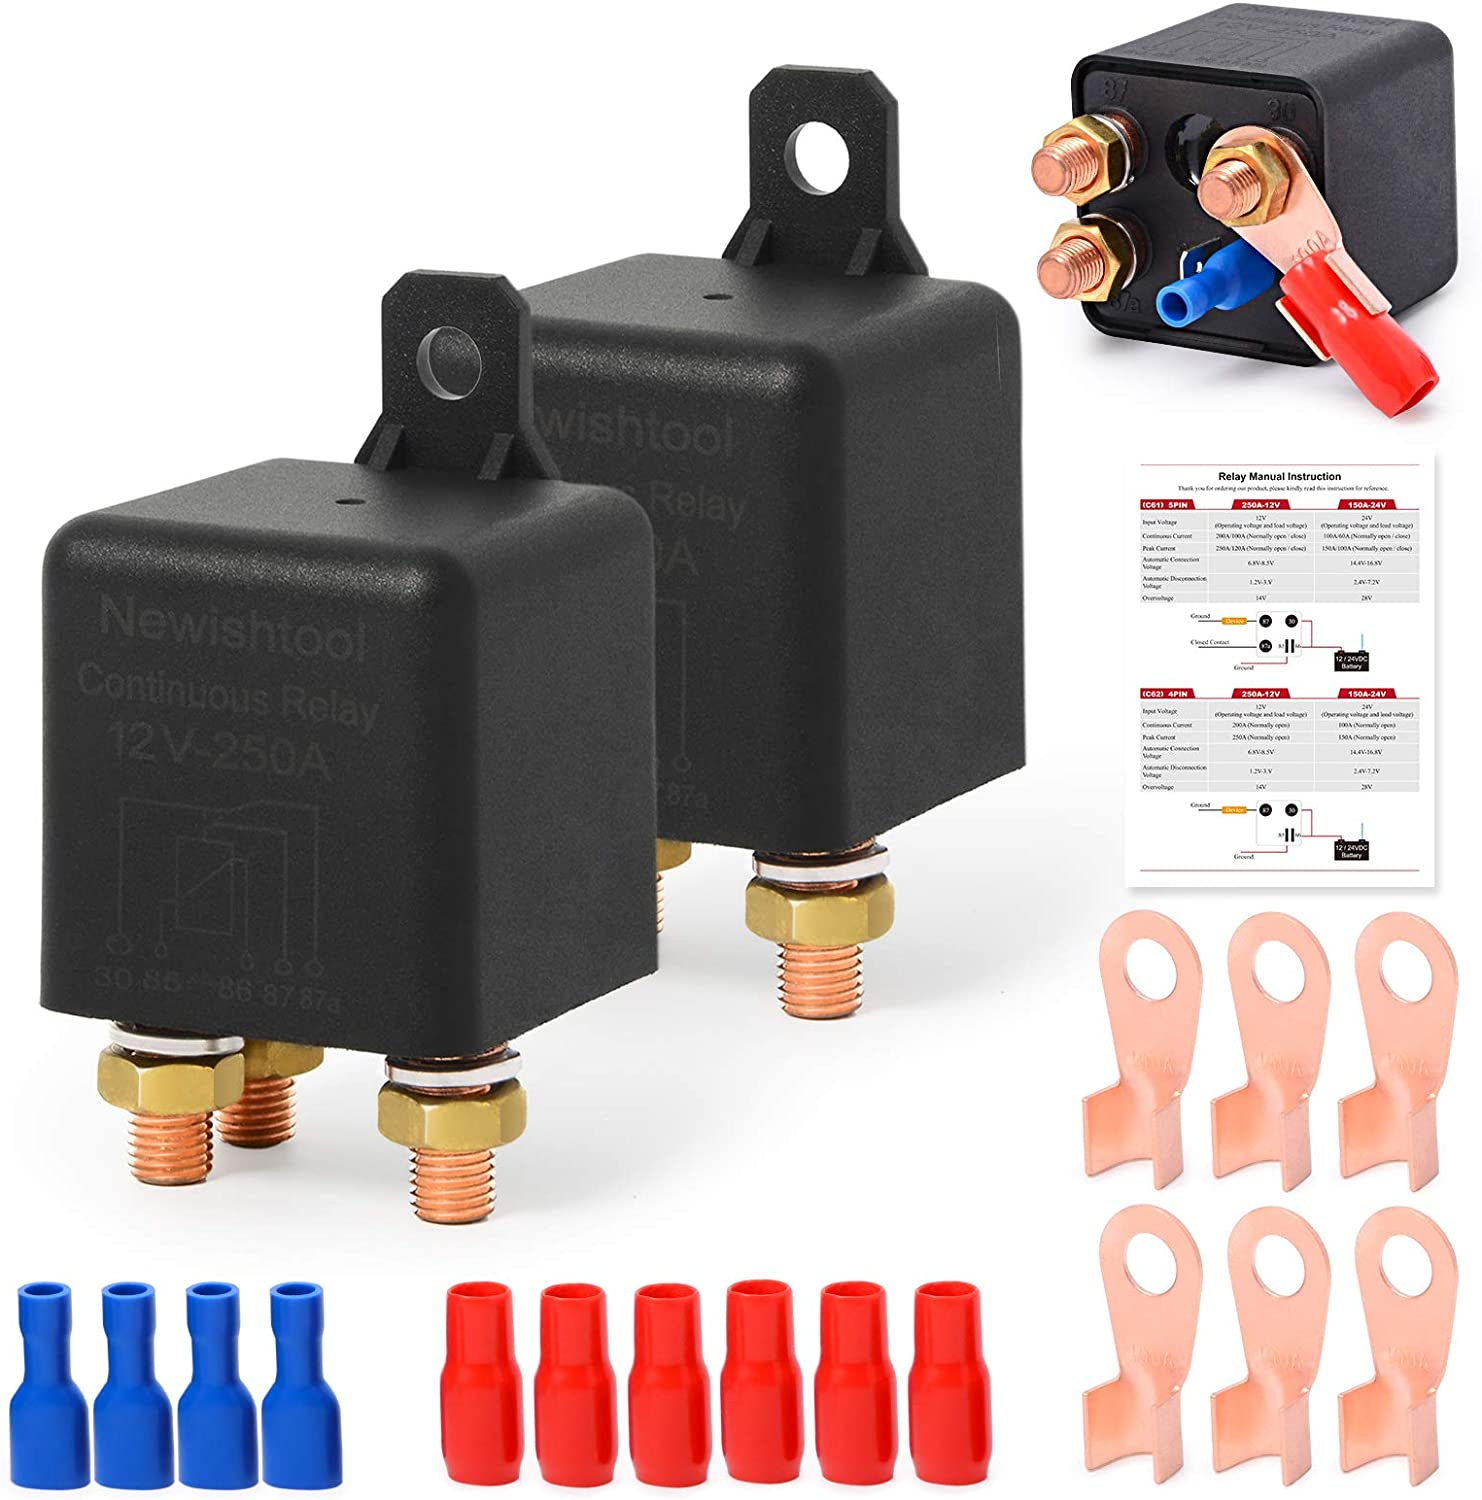 12V Max 47% OFF 250A Continuous Relay On Power Start Indianapolis Mall Off Automotive Switcher